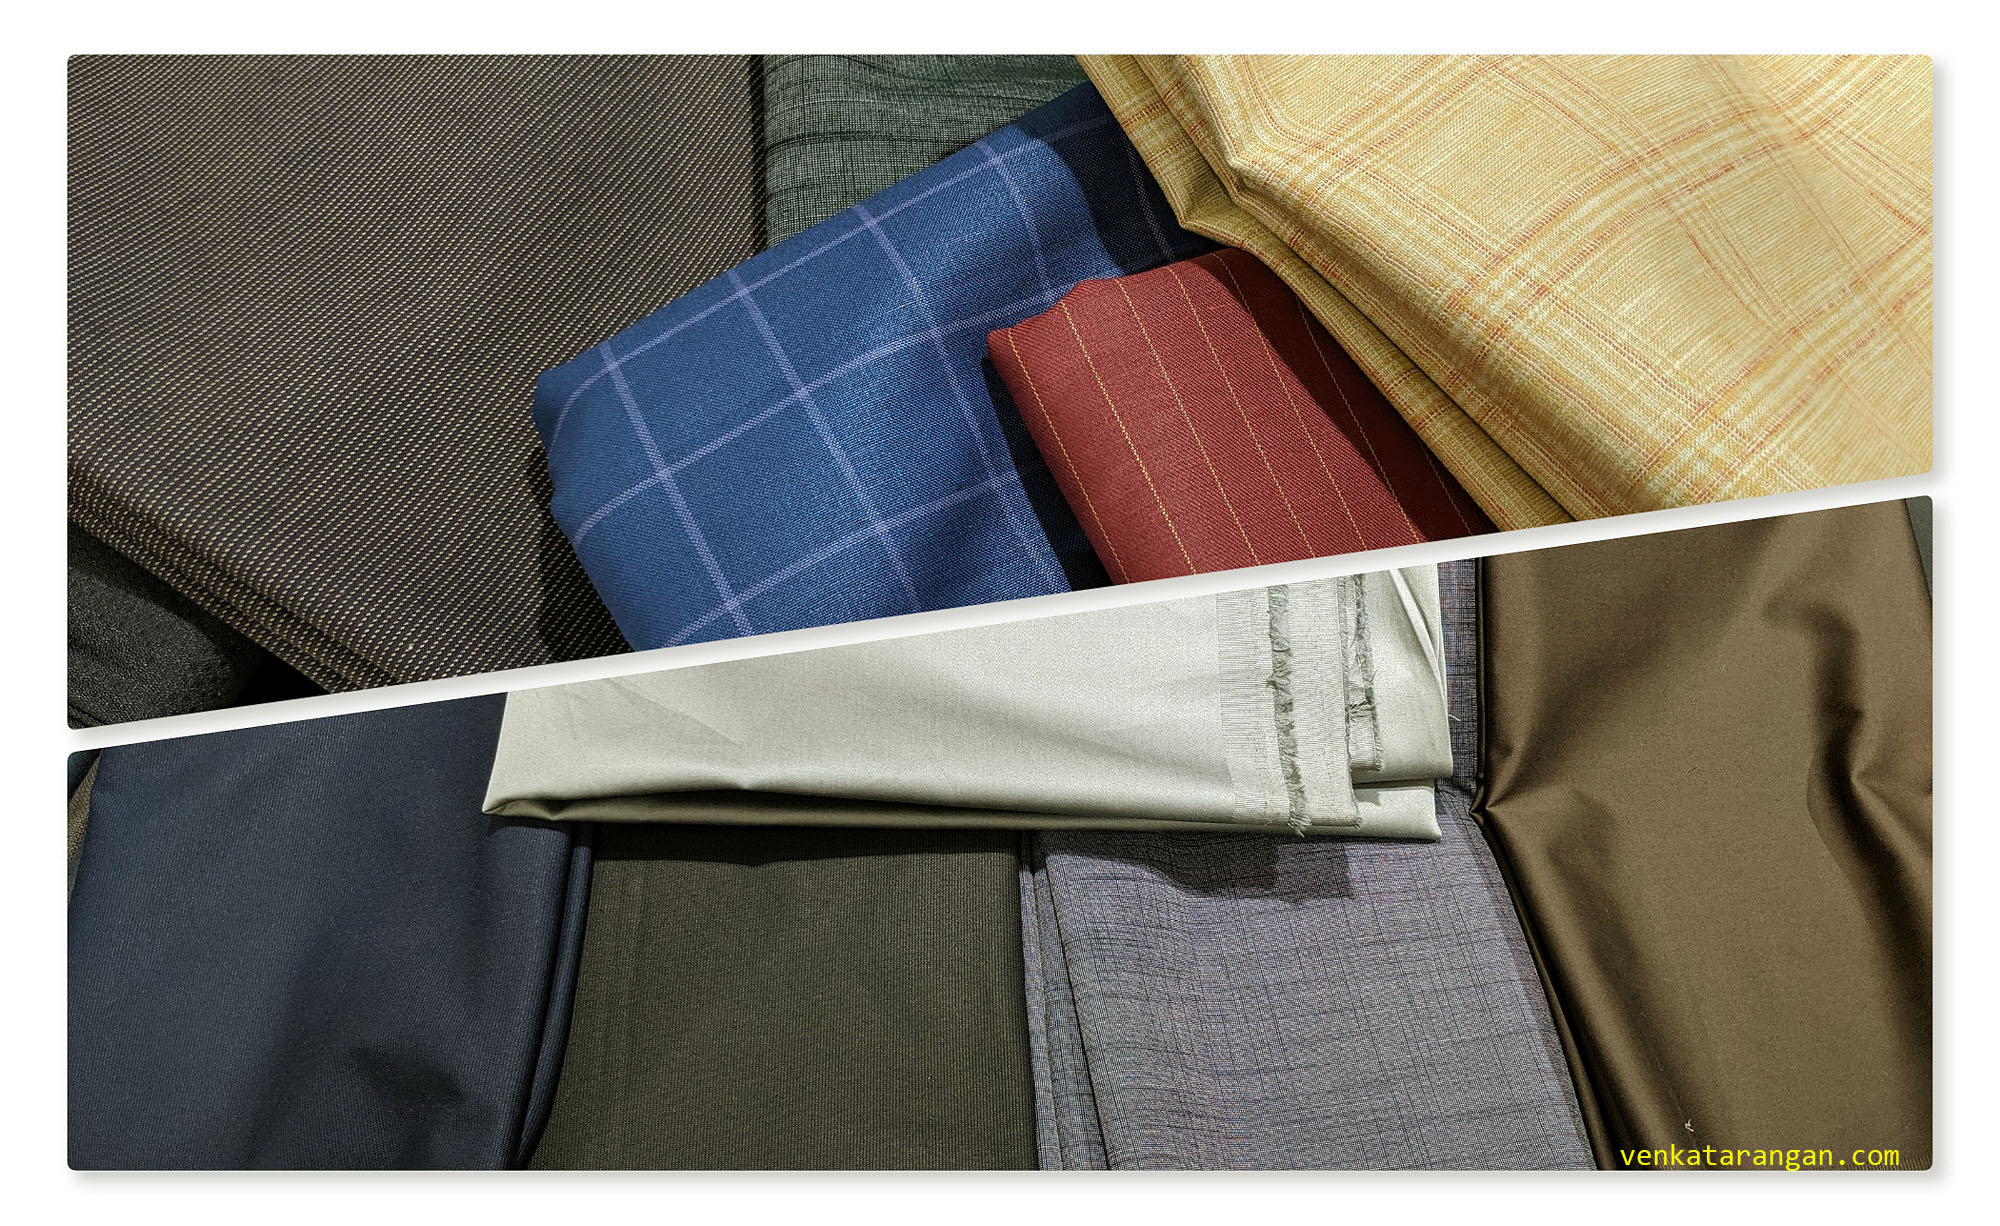 A few of the cloth materials I bought for bespoke shirts and trousers for me and my son